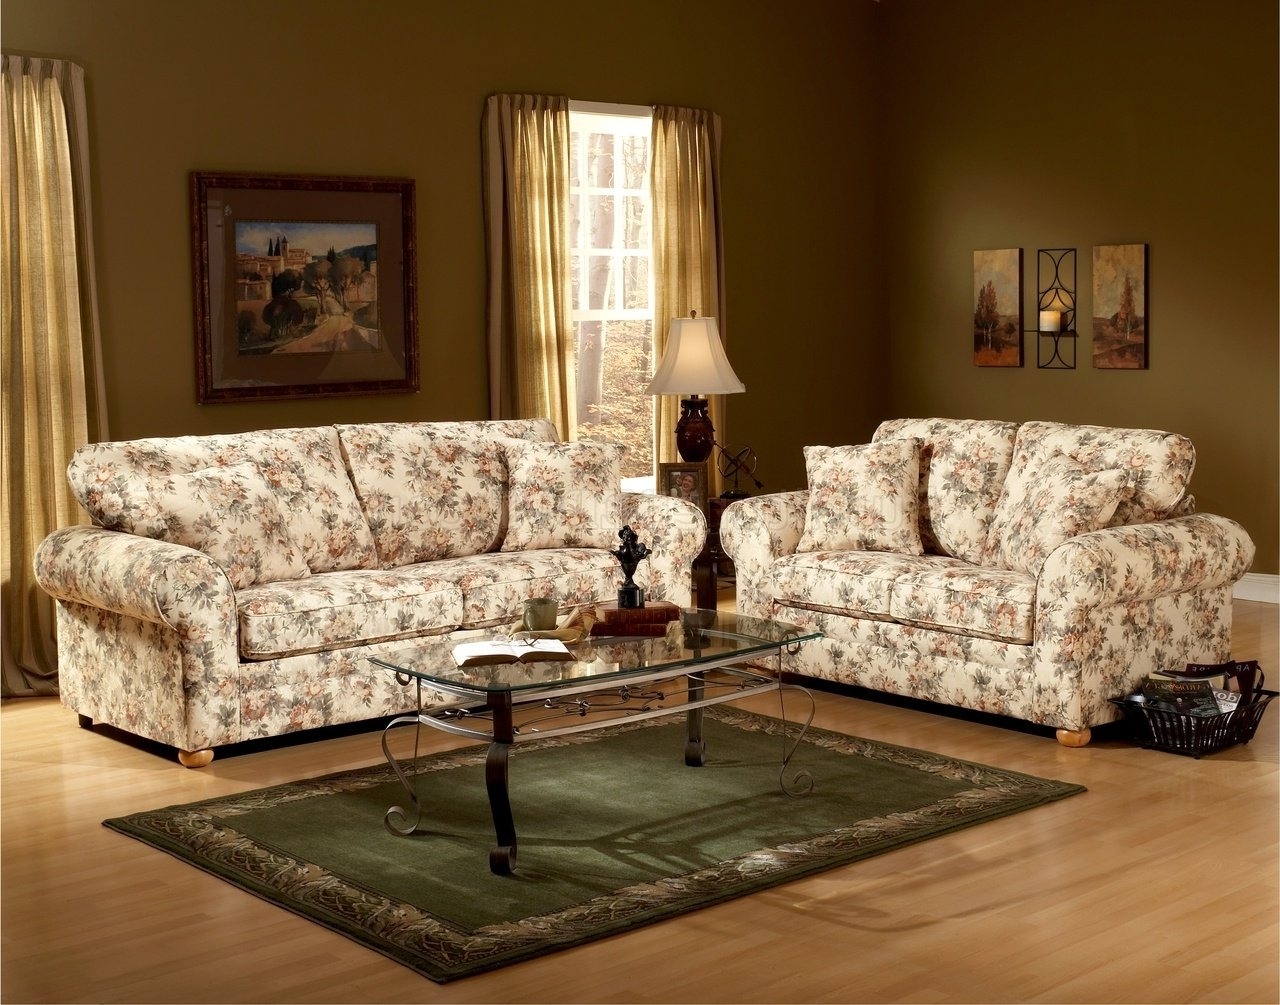 Floral Pattern Fabric Traditional Sofa & Loveseat Set Intended For Recent Traditional Sofas And Chairs (View 6 of 20)